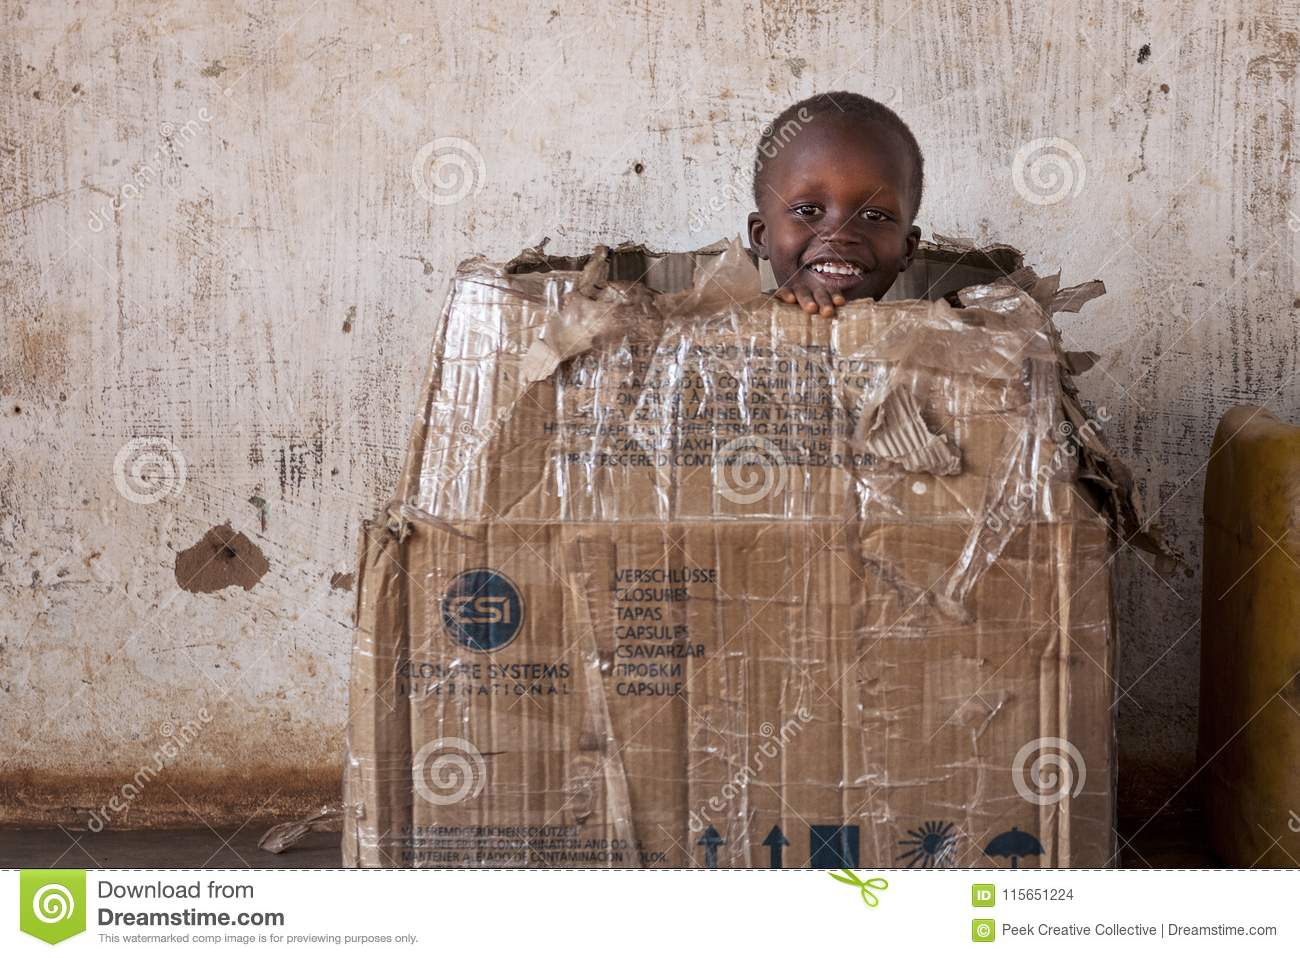 Portrait of a young boy playing in a card box in the town of Nhacra in Guinea Bissau